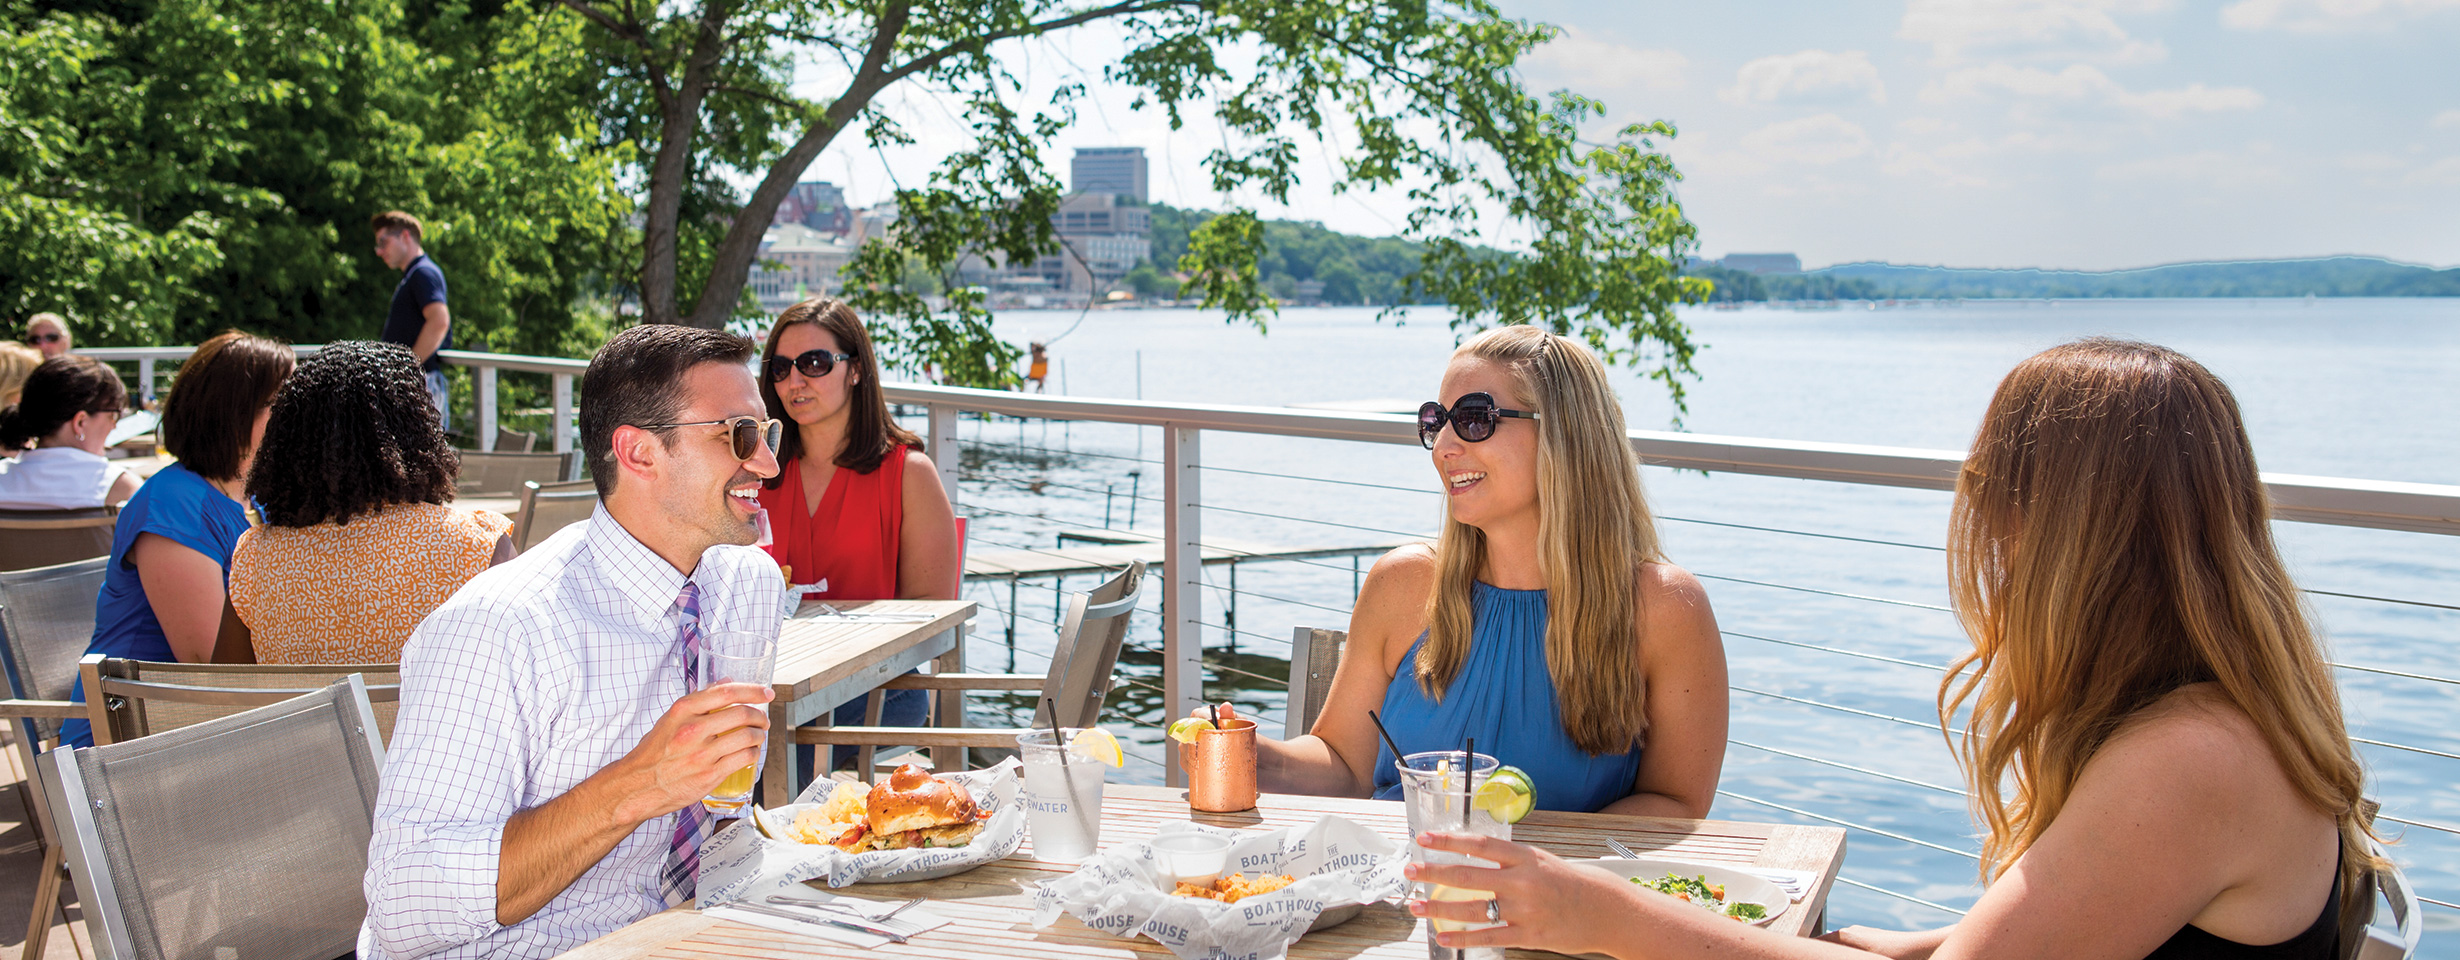 The Boathouse at The Edgewater: Waterfront Dining